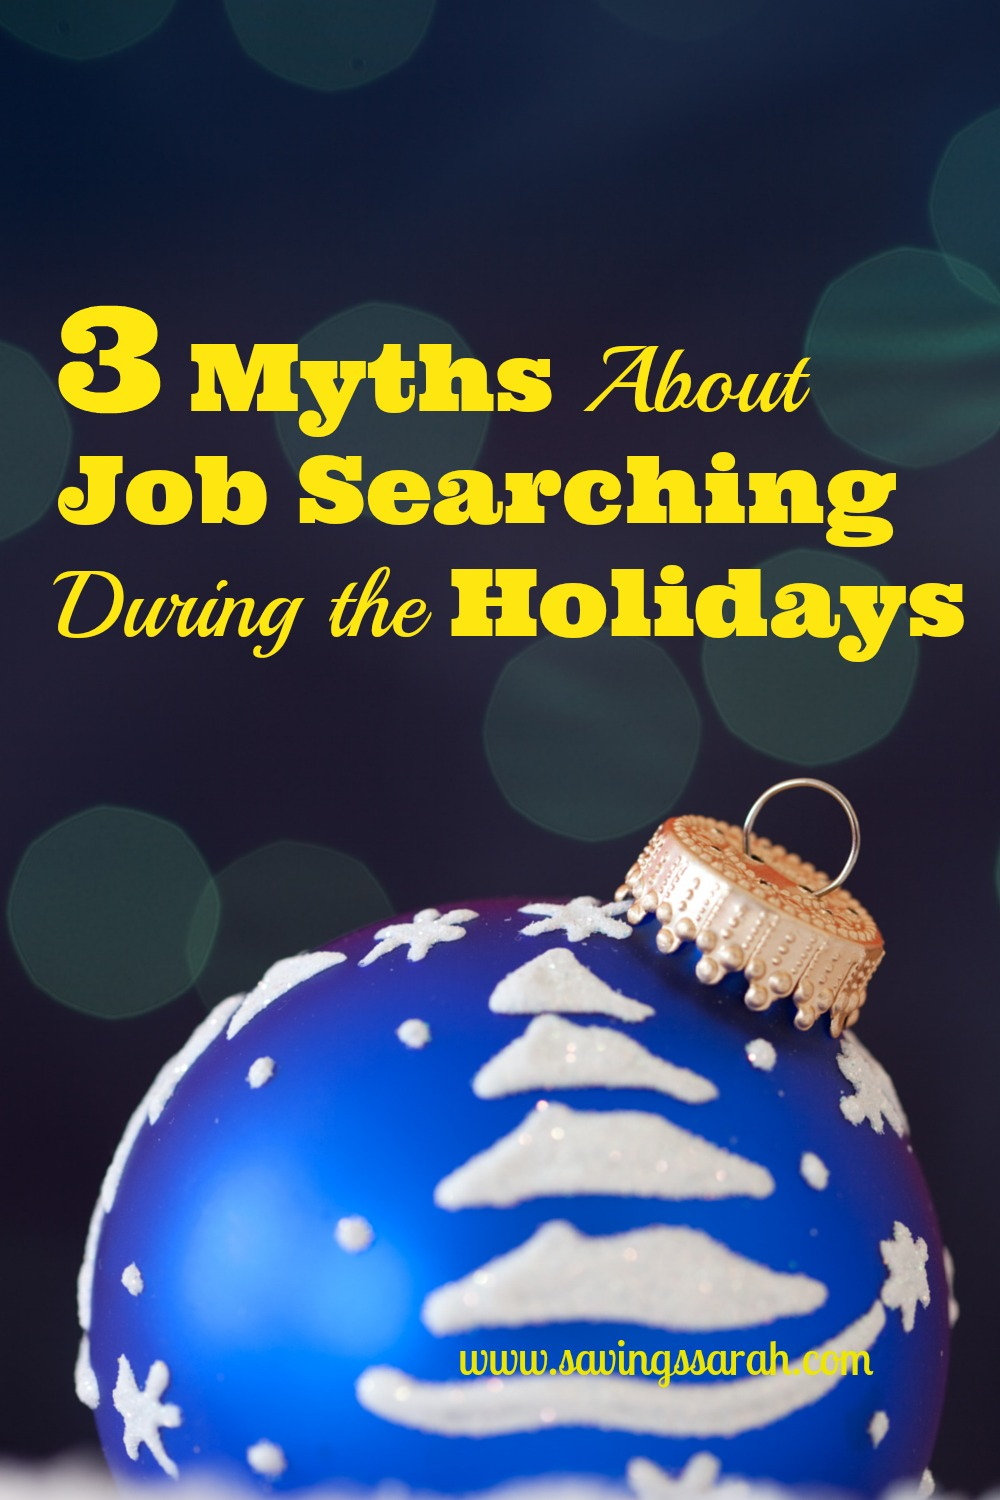 3 Myths about Job Searches During the Holidays